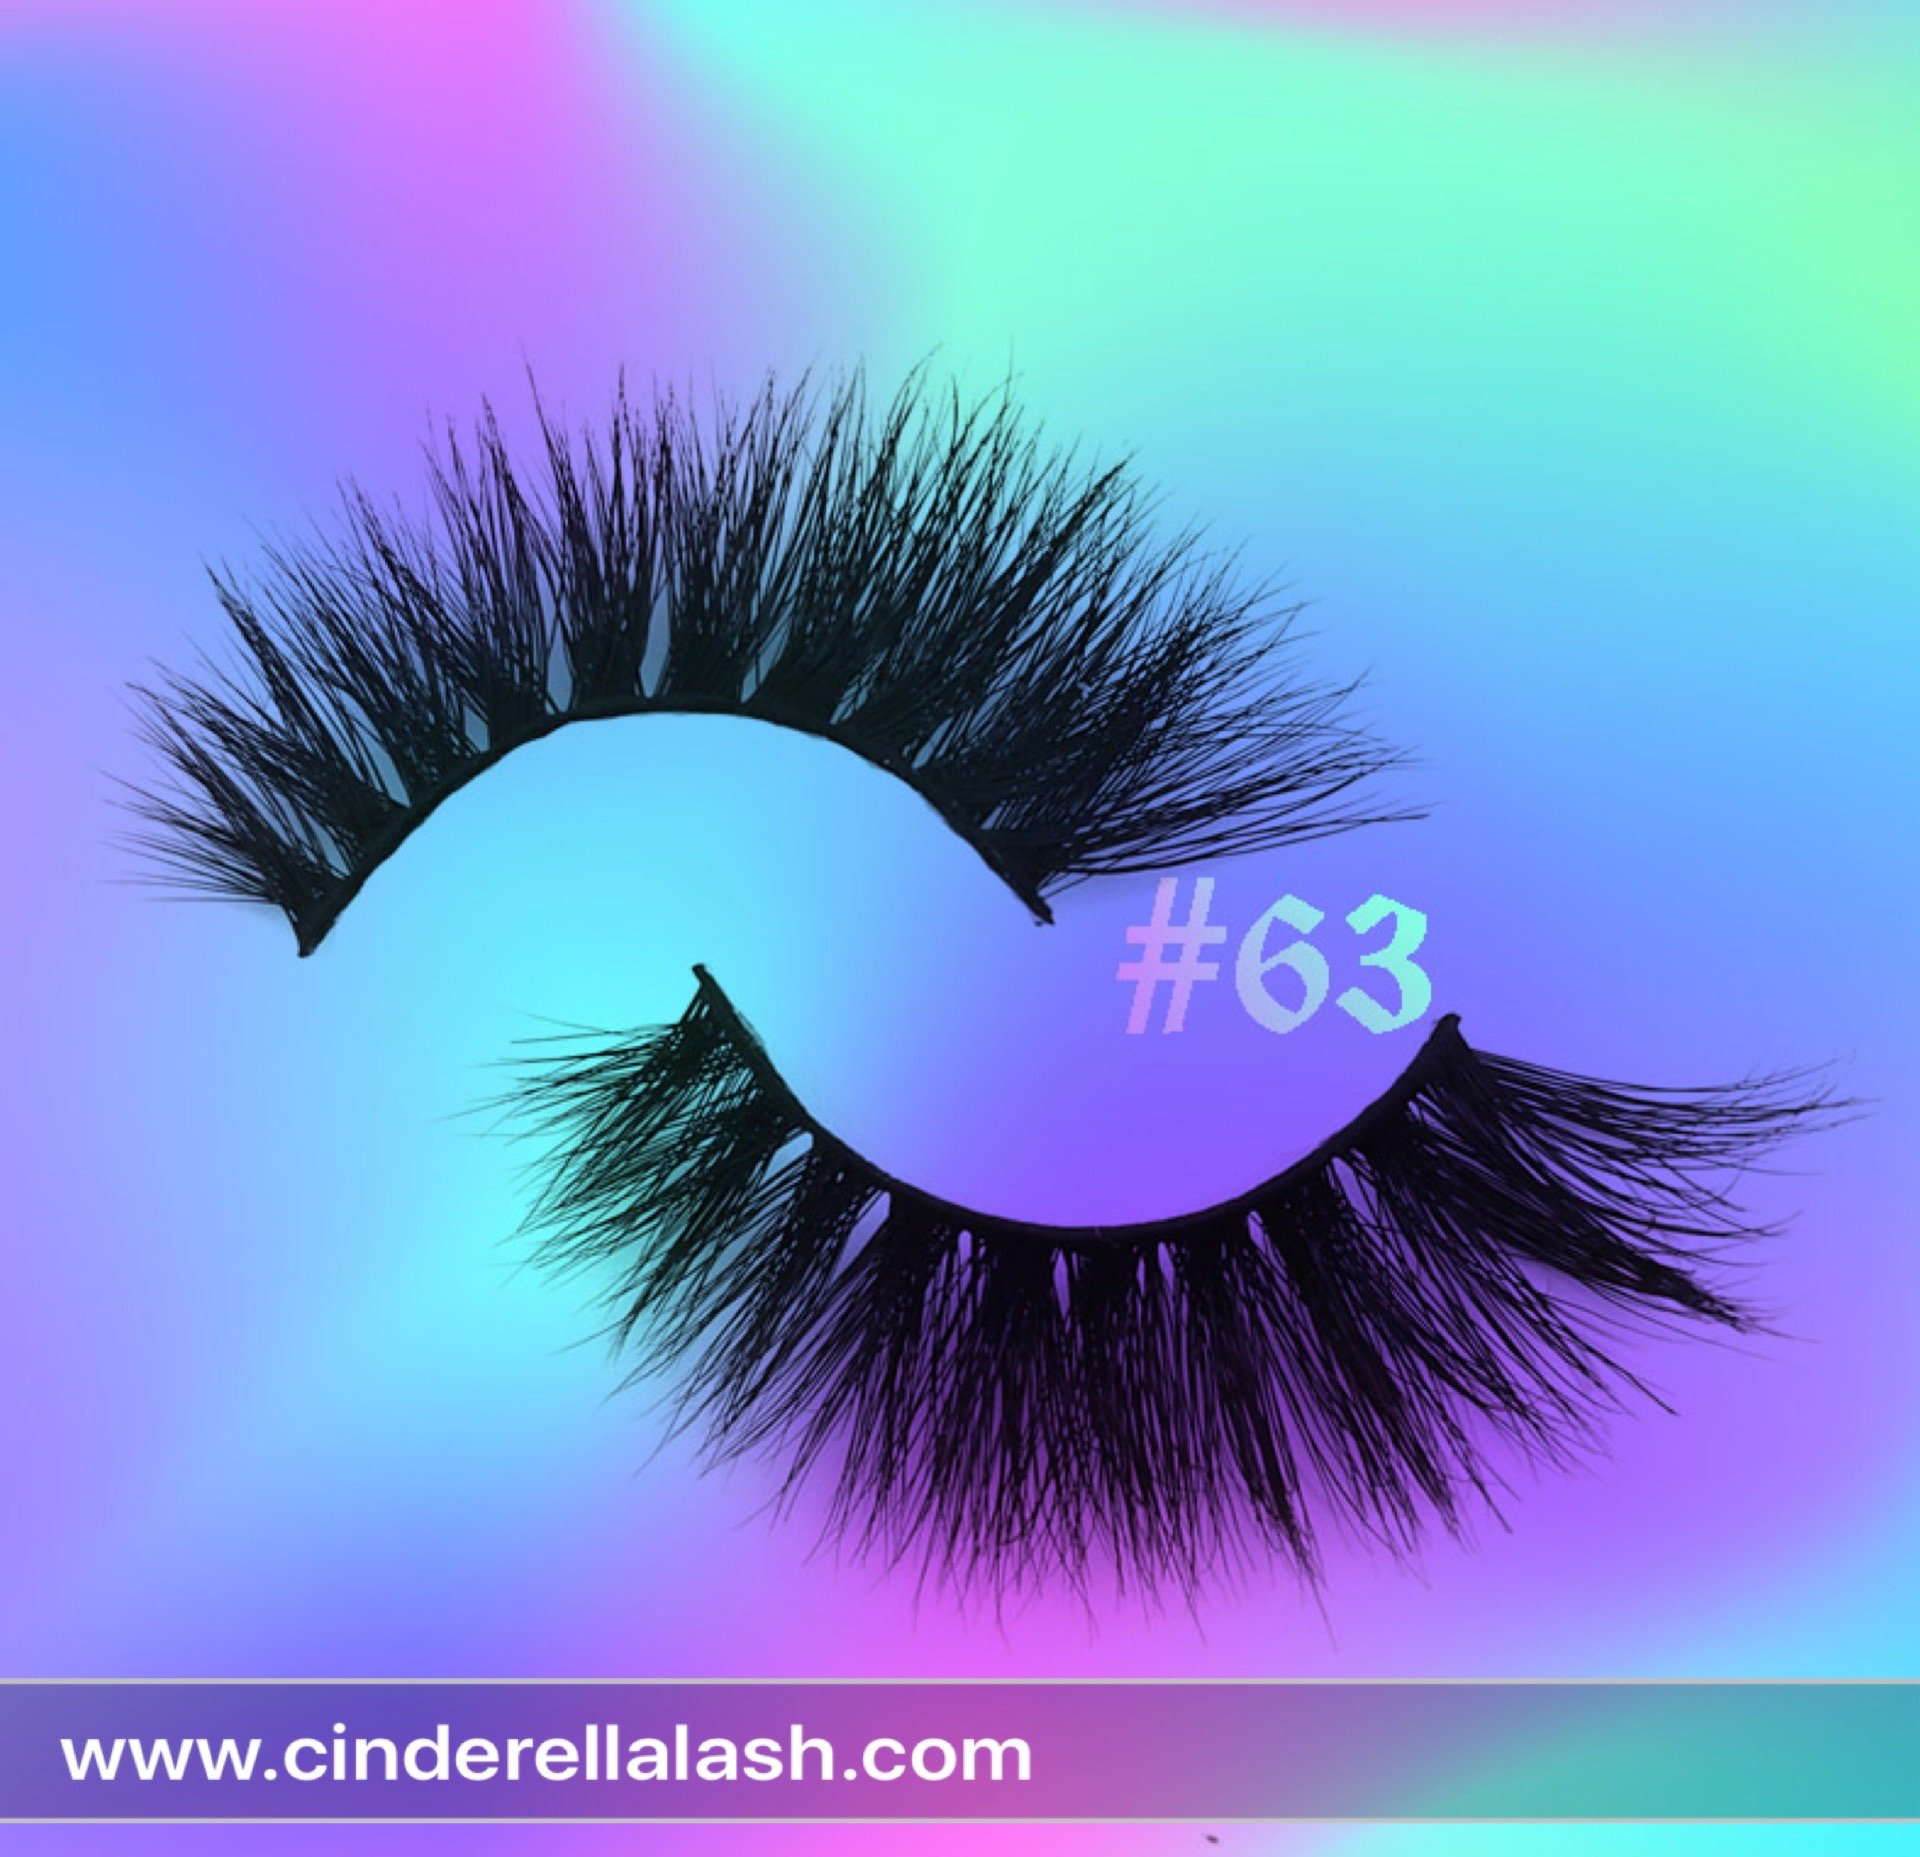 Cinderella cheap mink false eyelashes for business